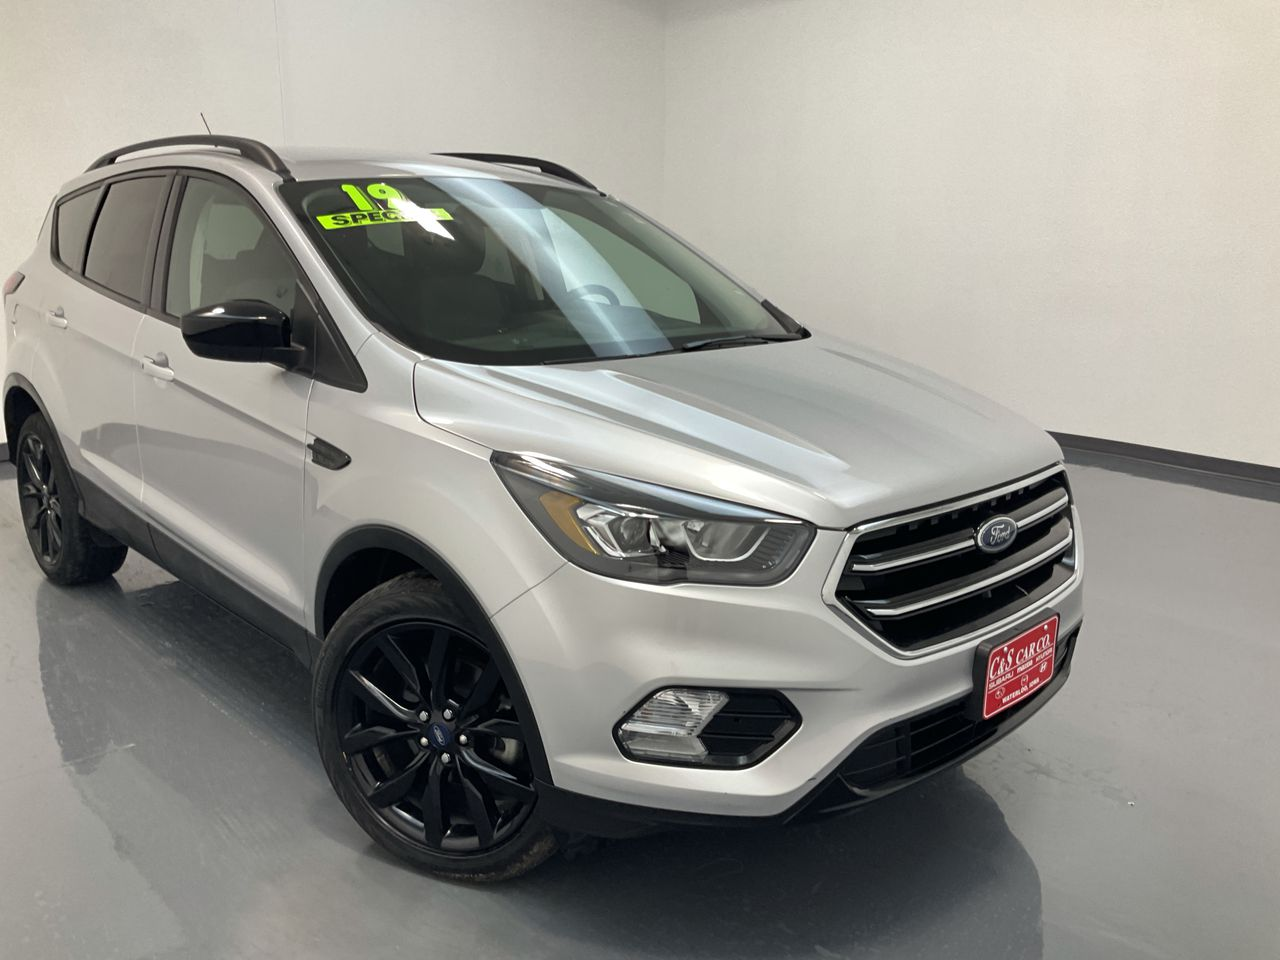 2019 Ford Escape 4D SUV FWD  - 16508  - C & S Car Company